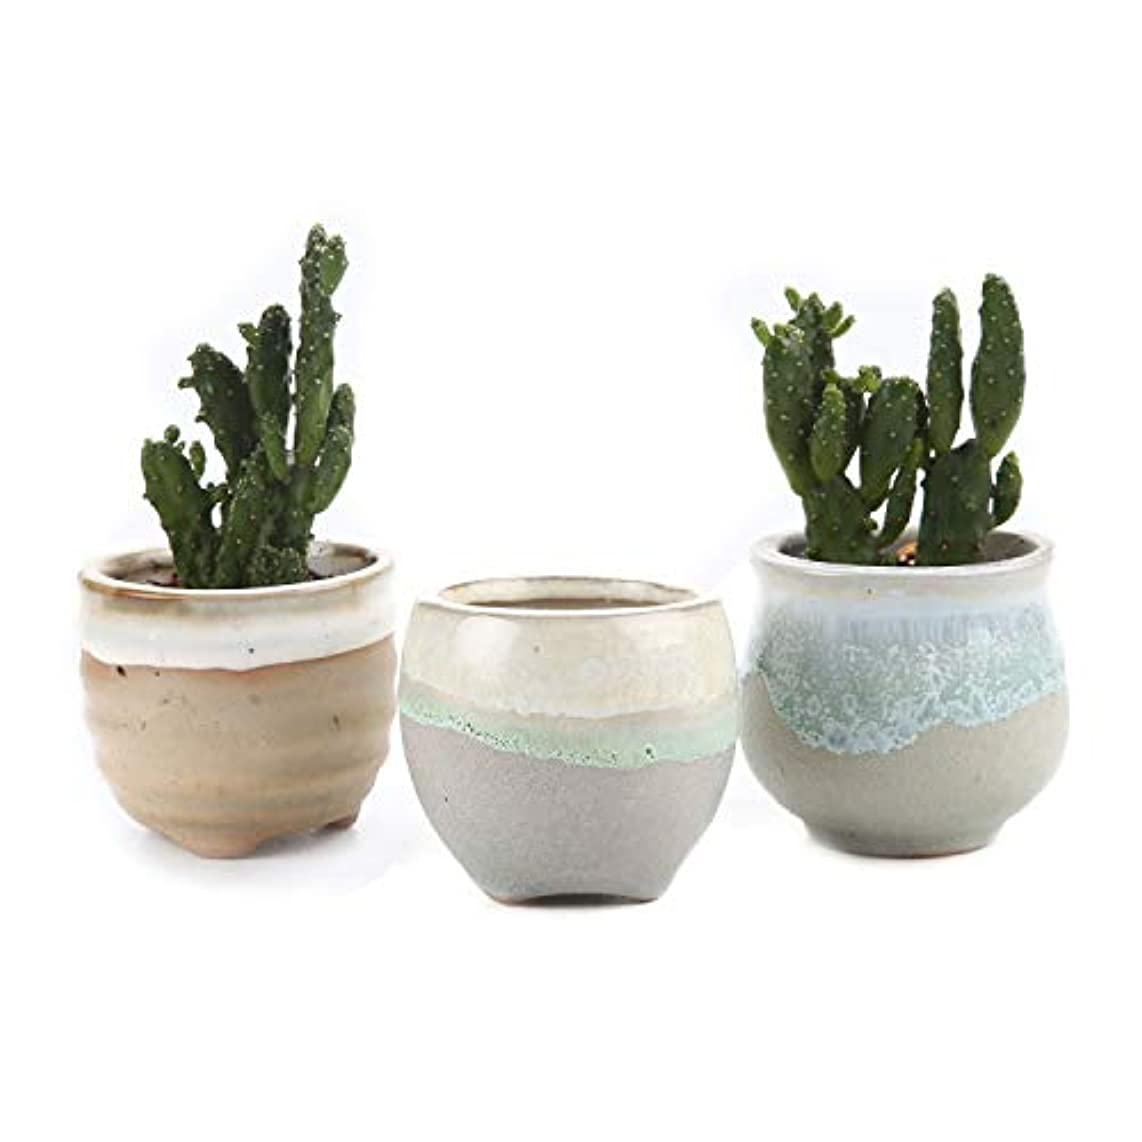 T4U 2.5 Inch Ceramic Flowing Glaze Solid Gray Base Serial (3 Shape) Set Succulent Plant Pot/Cactus Plant Pot Flower Pot/Container/Planter Package 1 Pack of 3